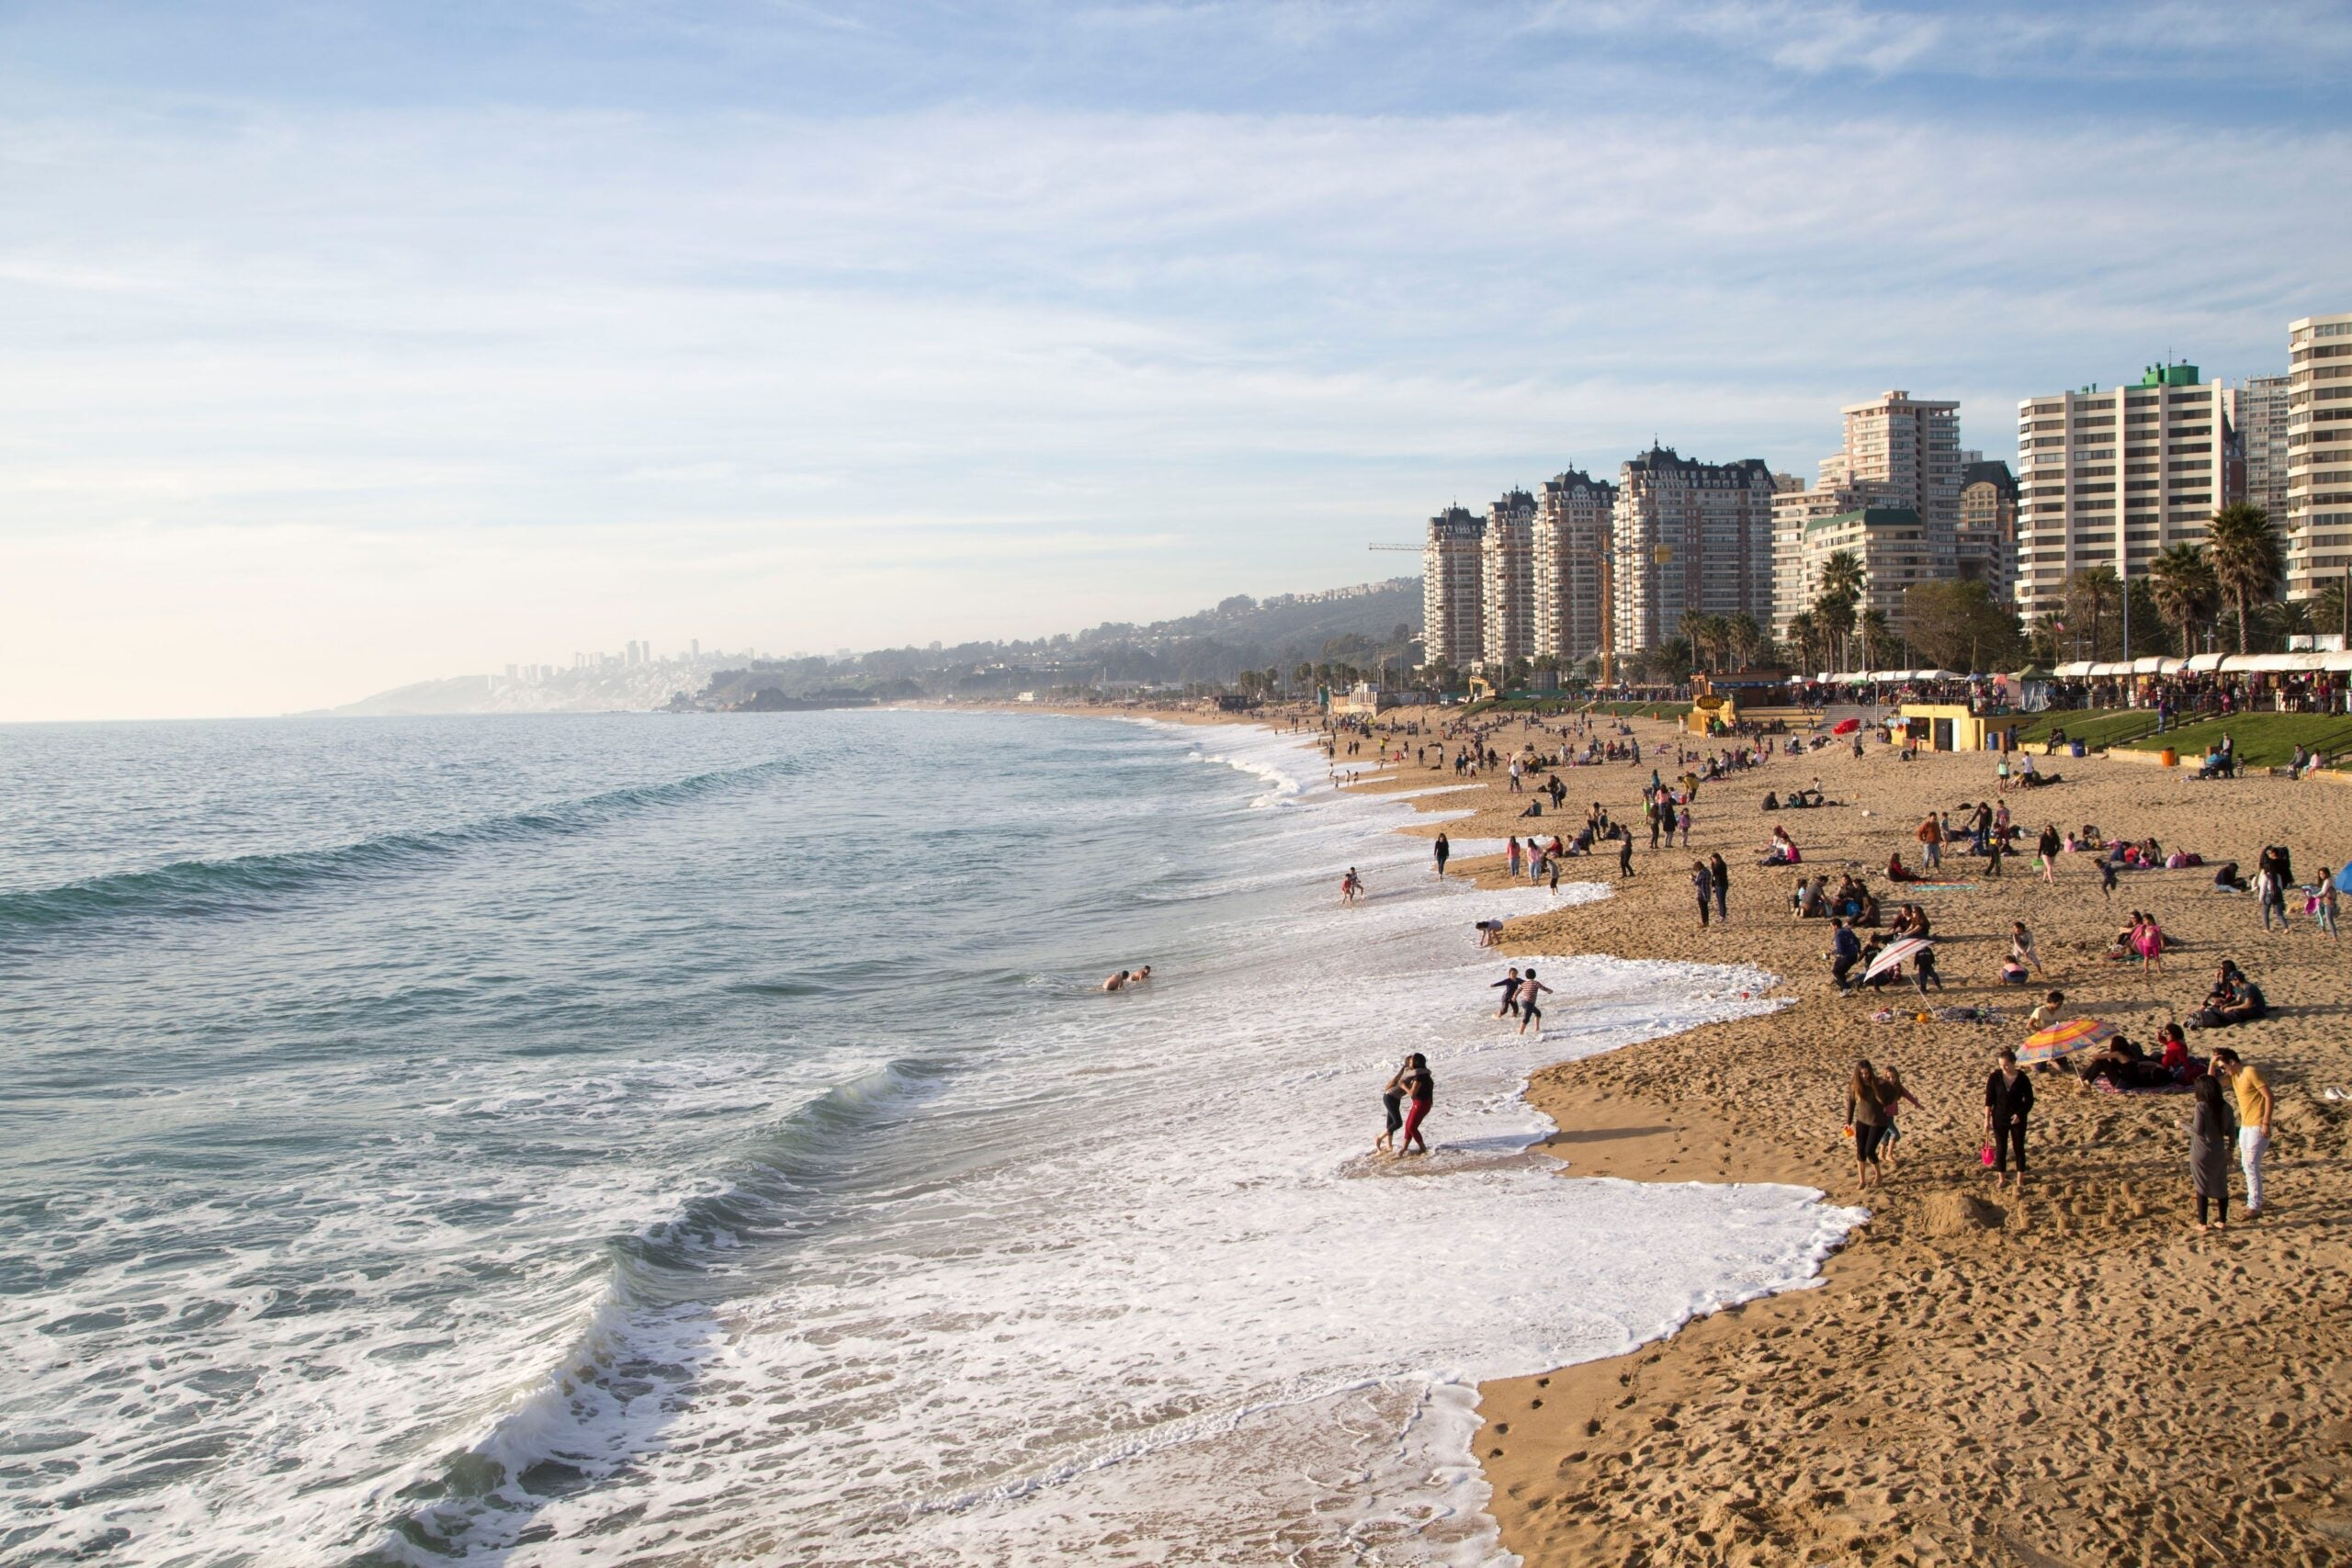 Chile reopening to vaccinated visitors in October with 5-day quarantine - The Points Guy UK